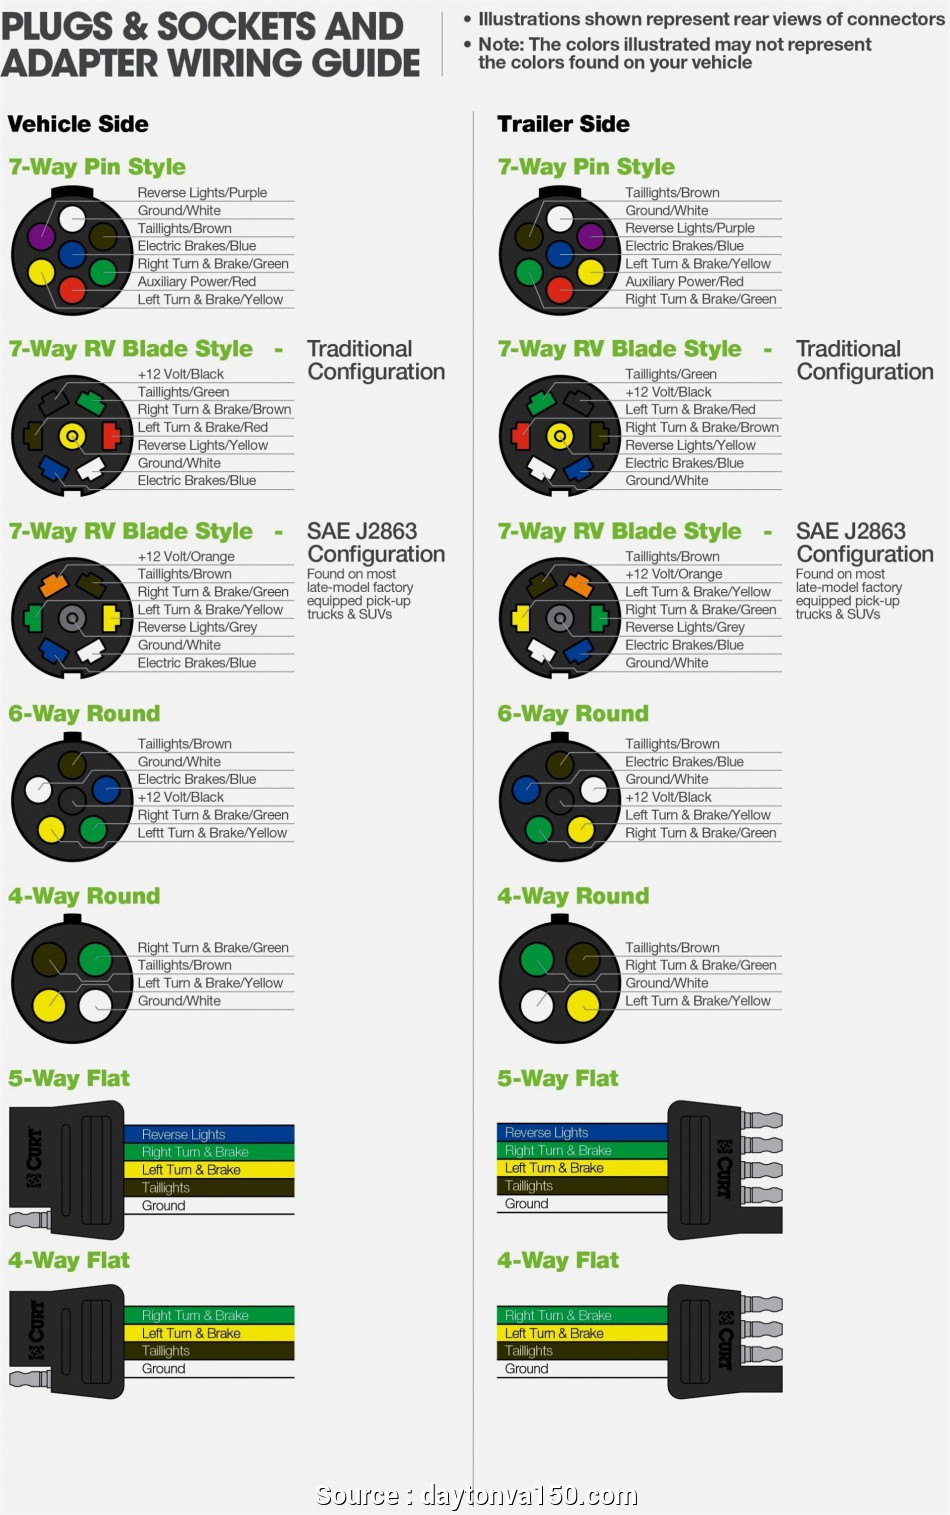 Electrical Plug Wiring Colors Australia Practical  Wiring Diagram - Wiring Diagram For Trailer Lights Australia